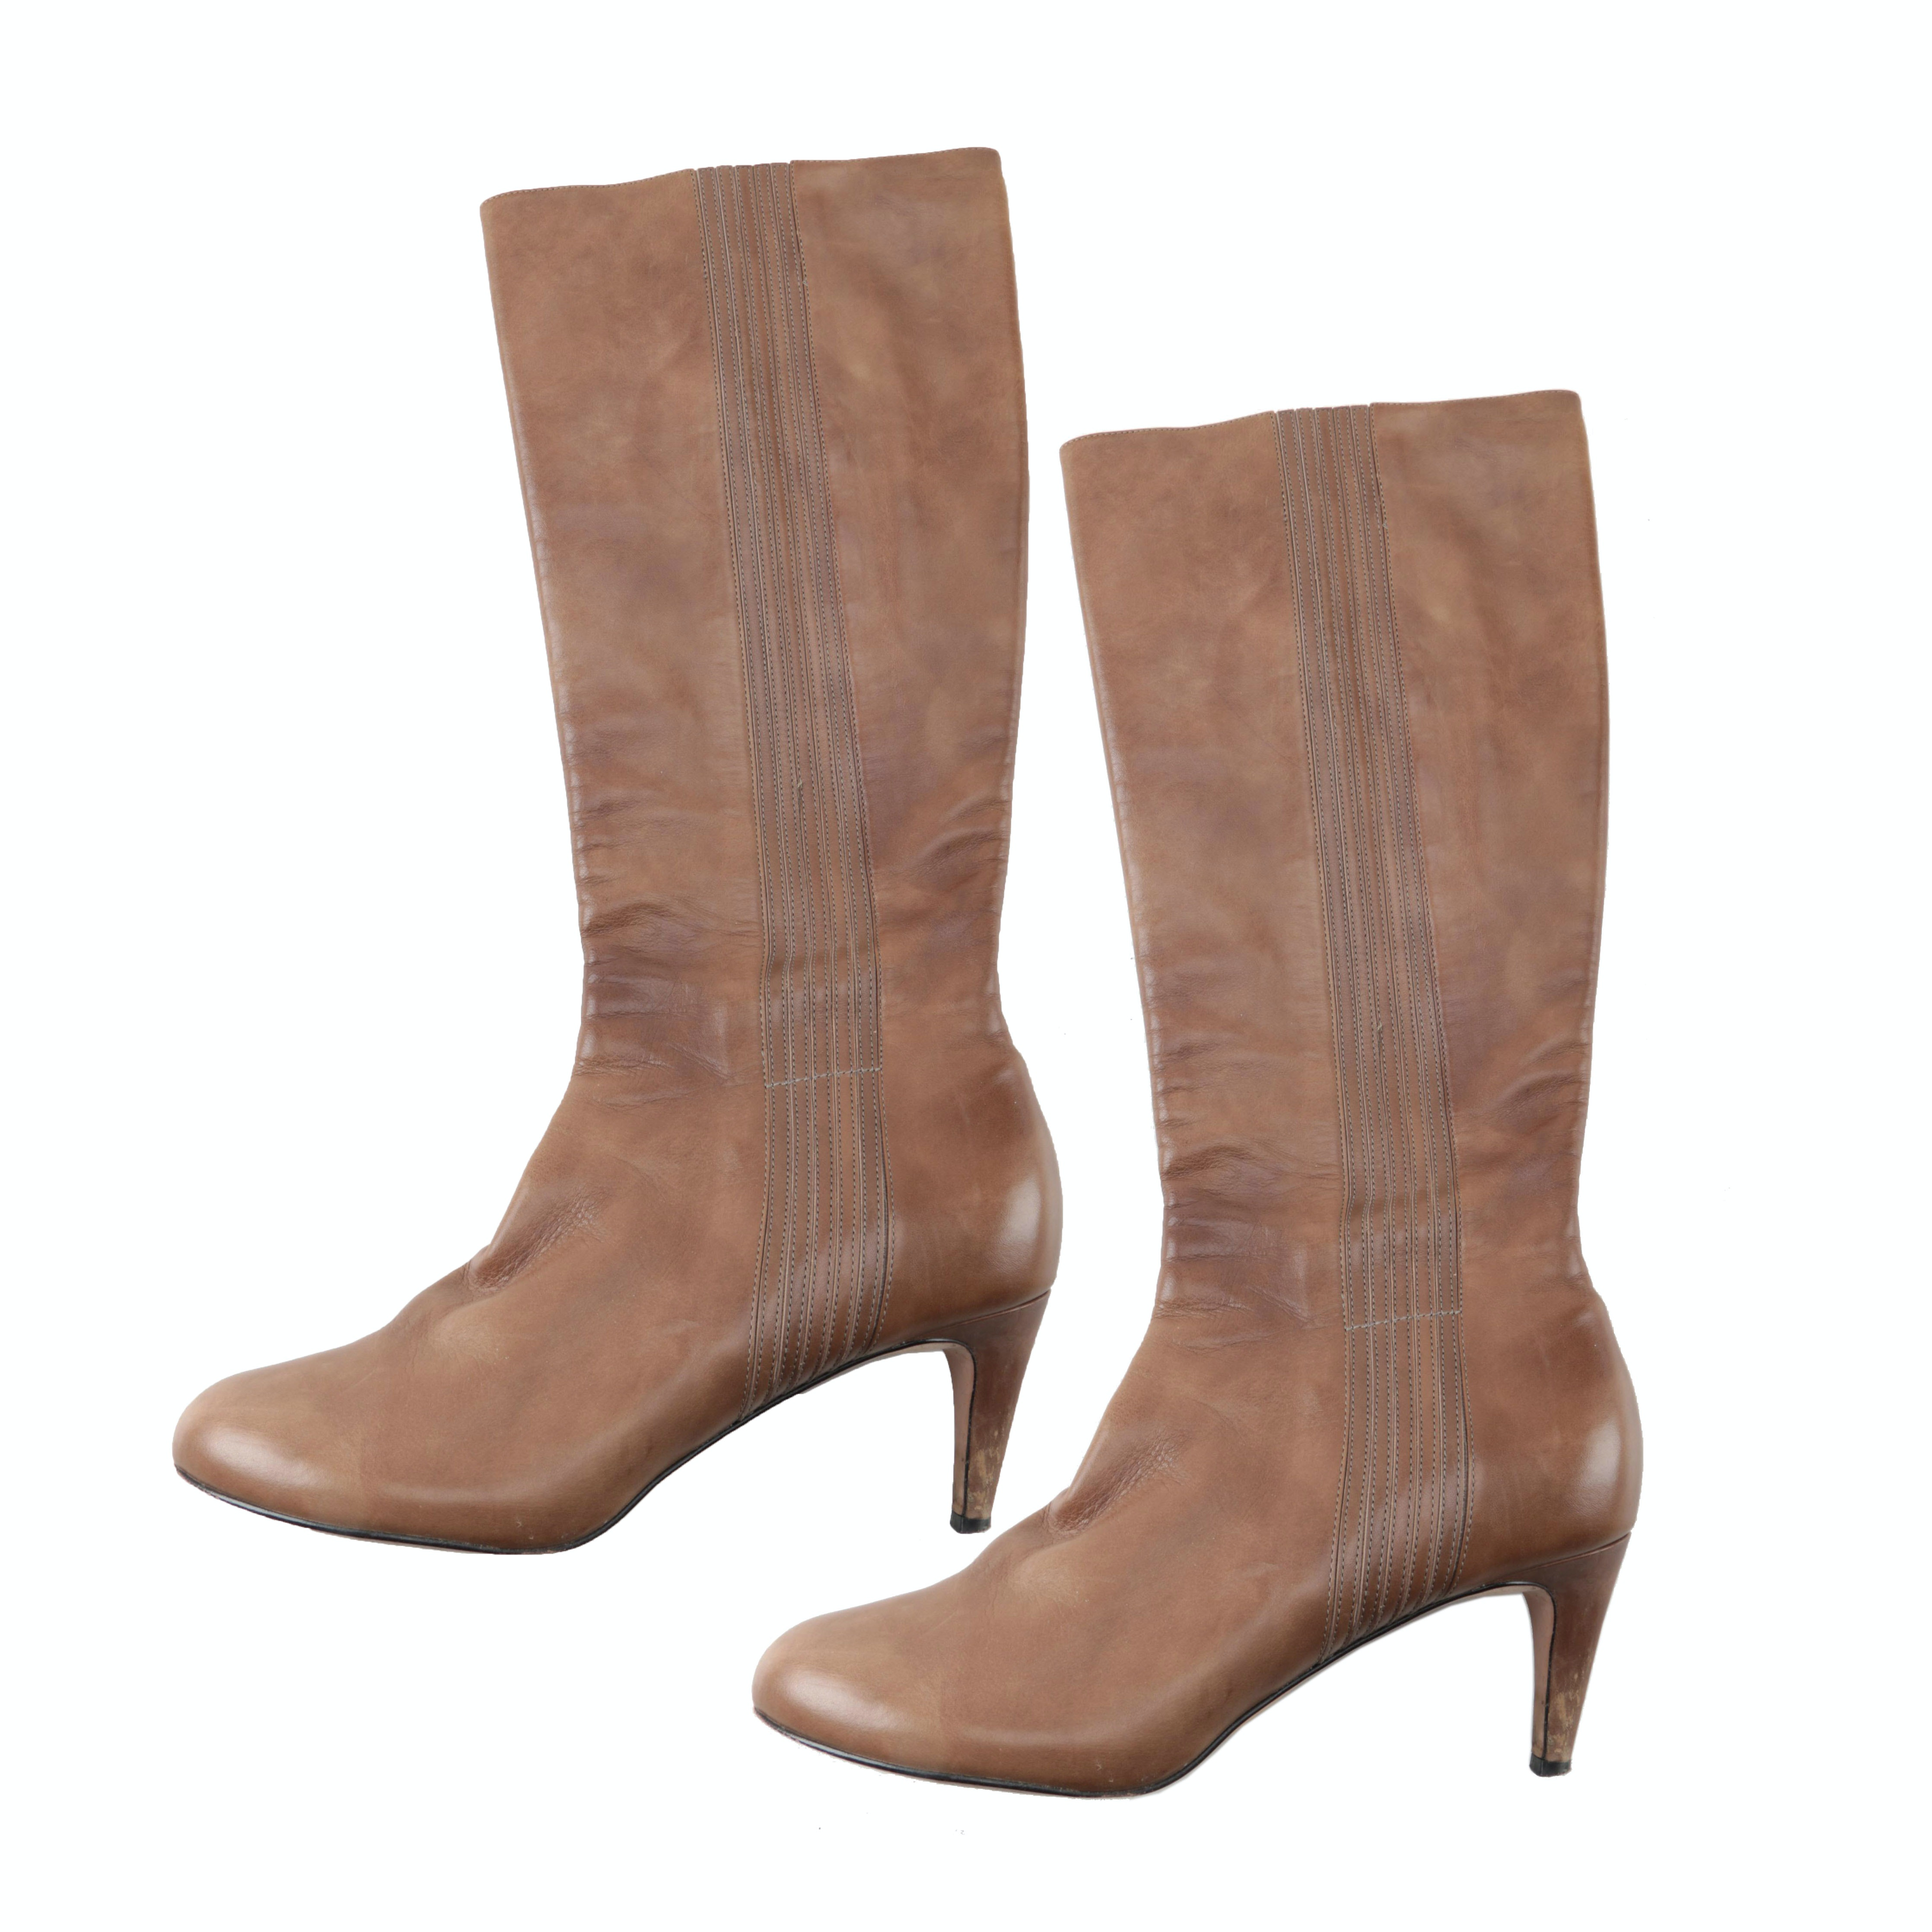 Women's Cole Haan Leather High Heeled Boots